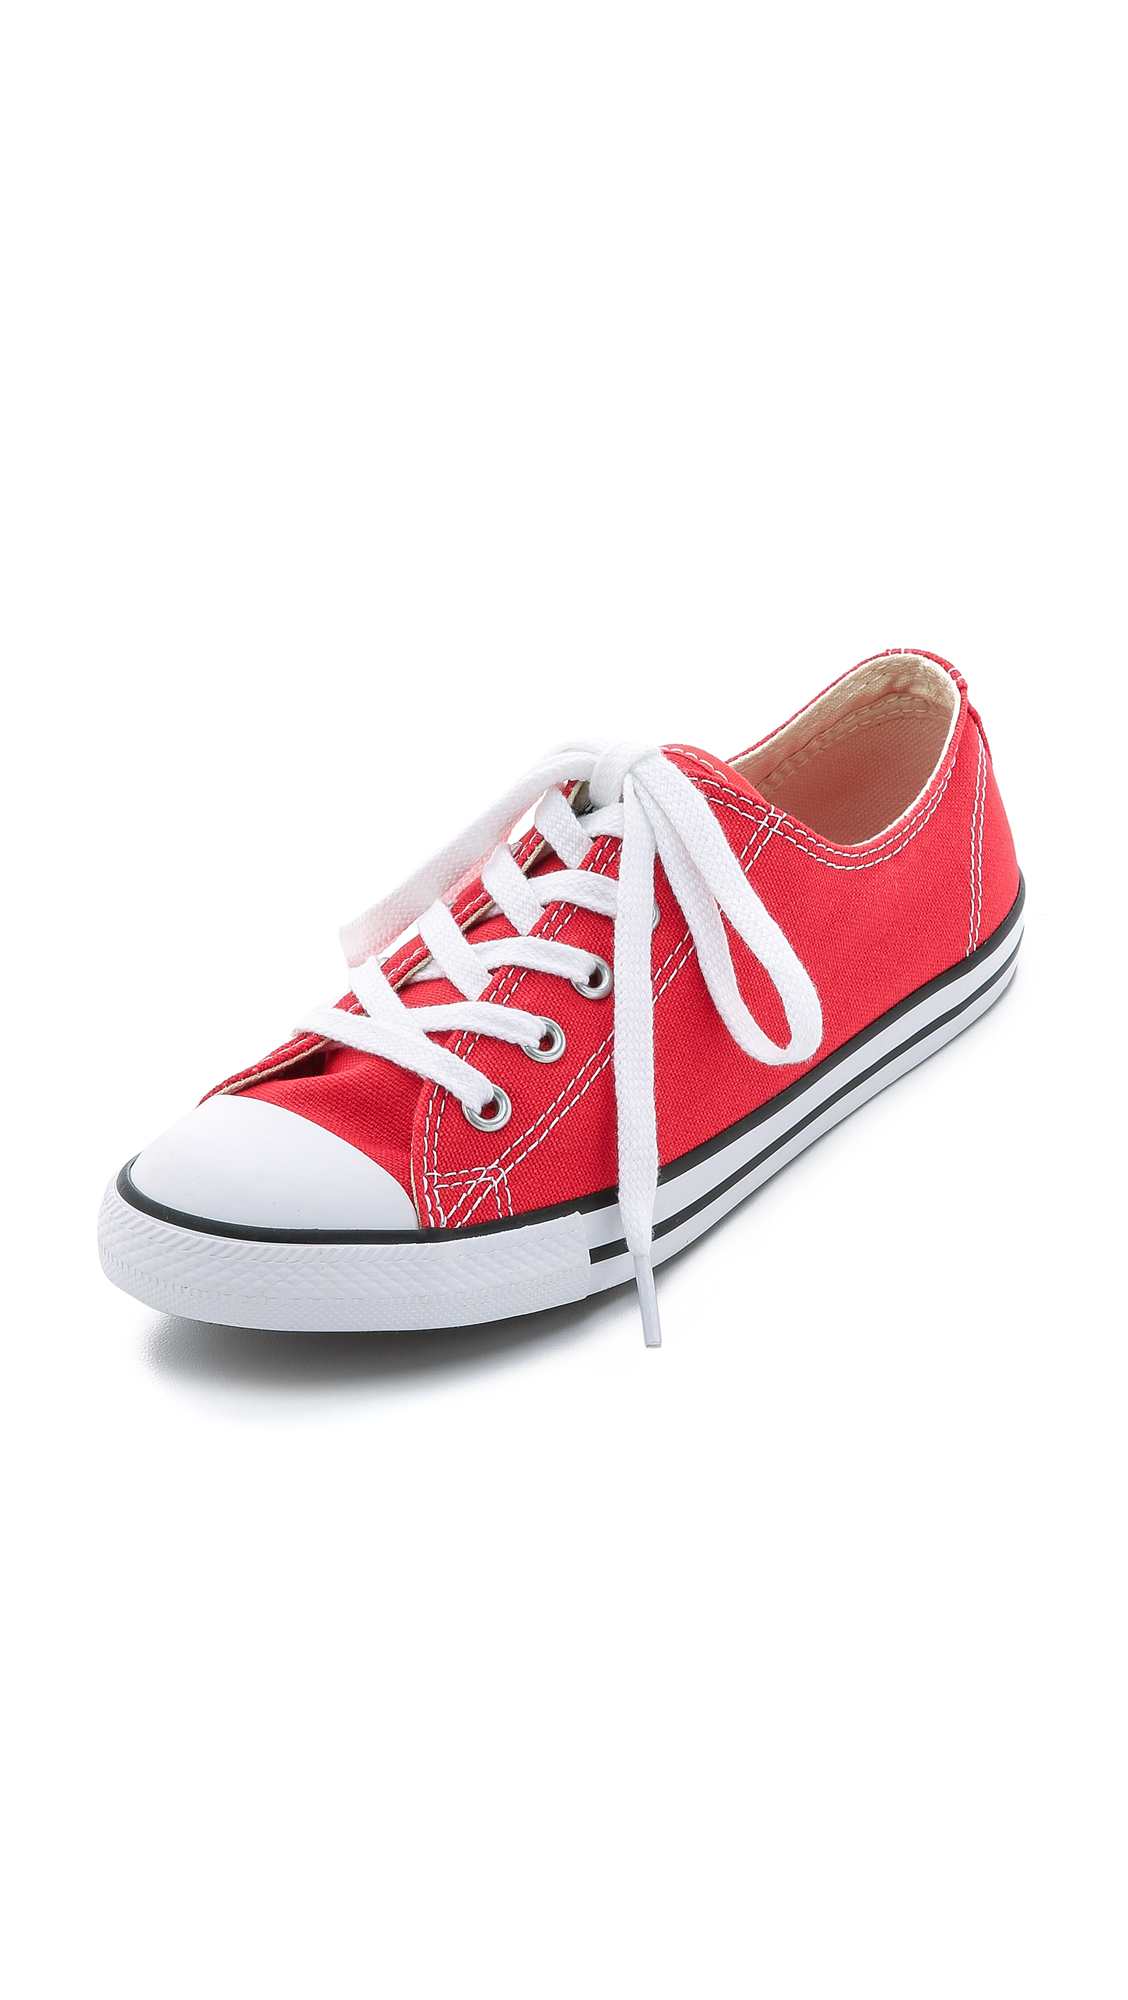 Women'S Chuck Taylor All Star Ox Casual Sneakers From Finish Line, Red